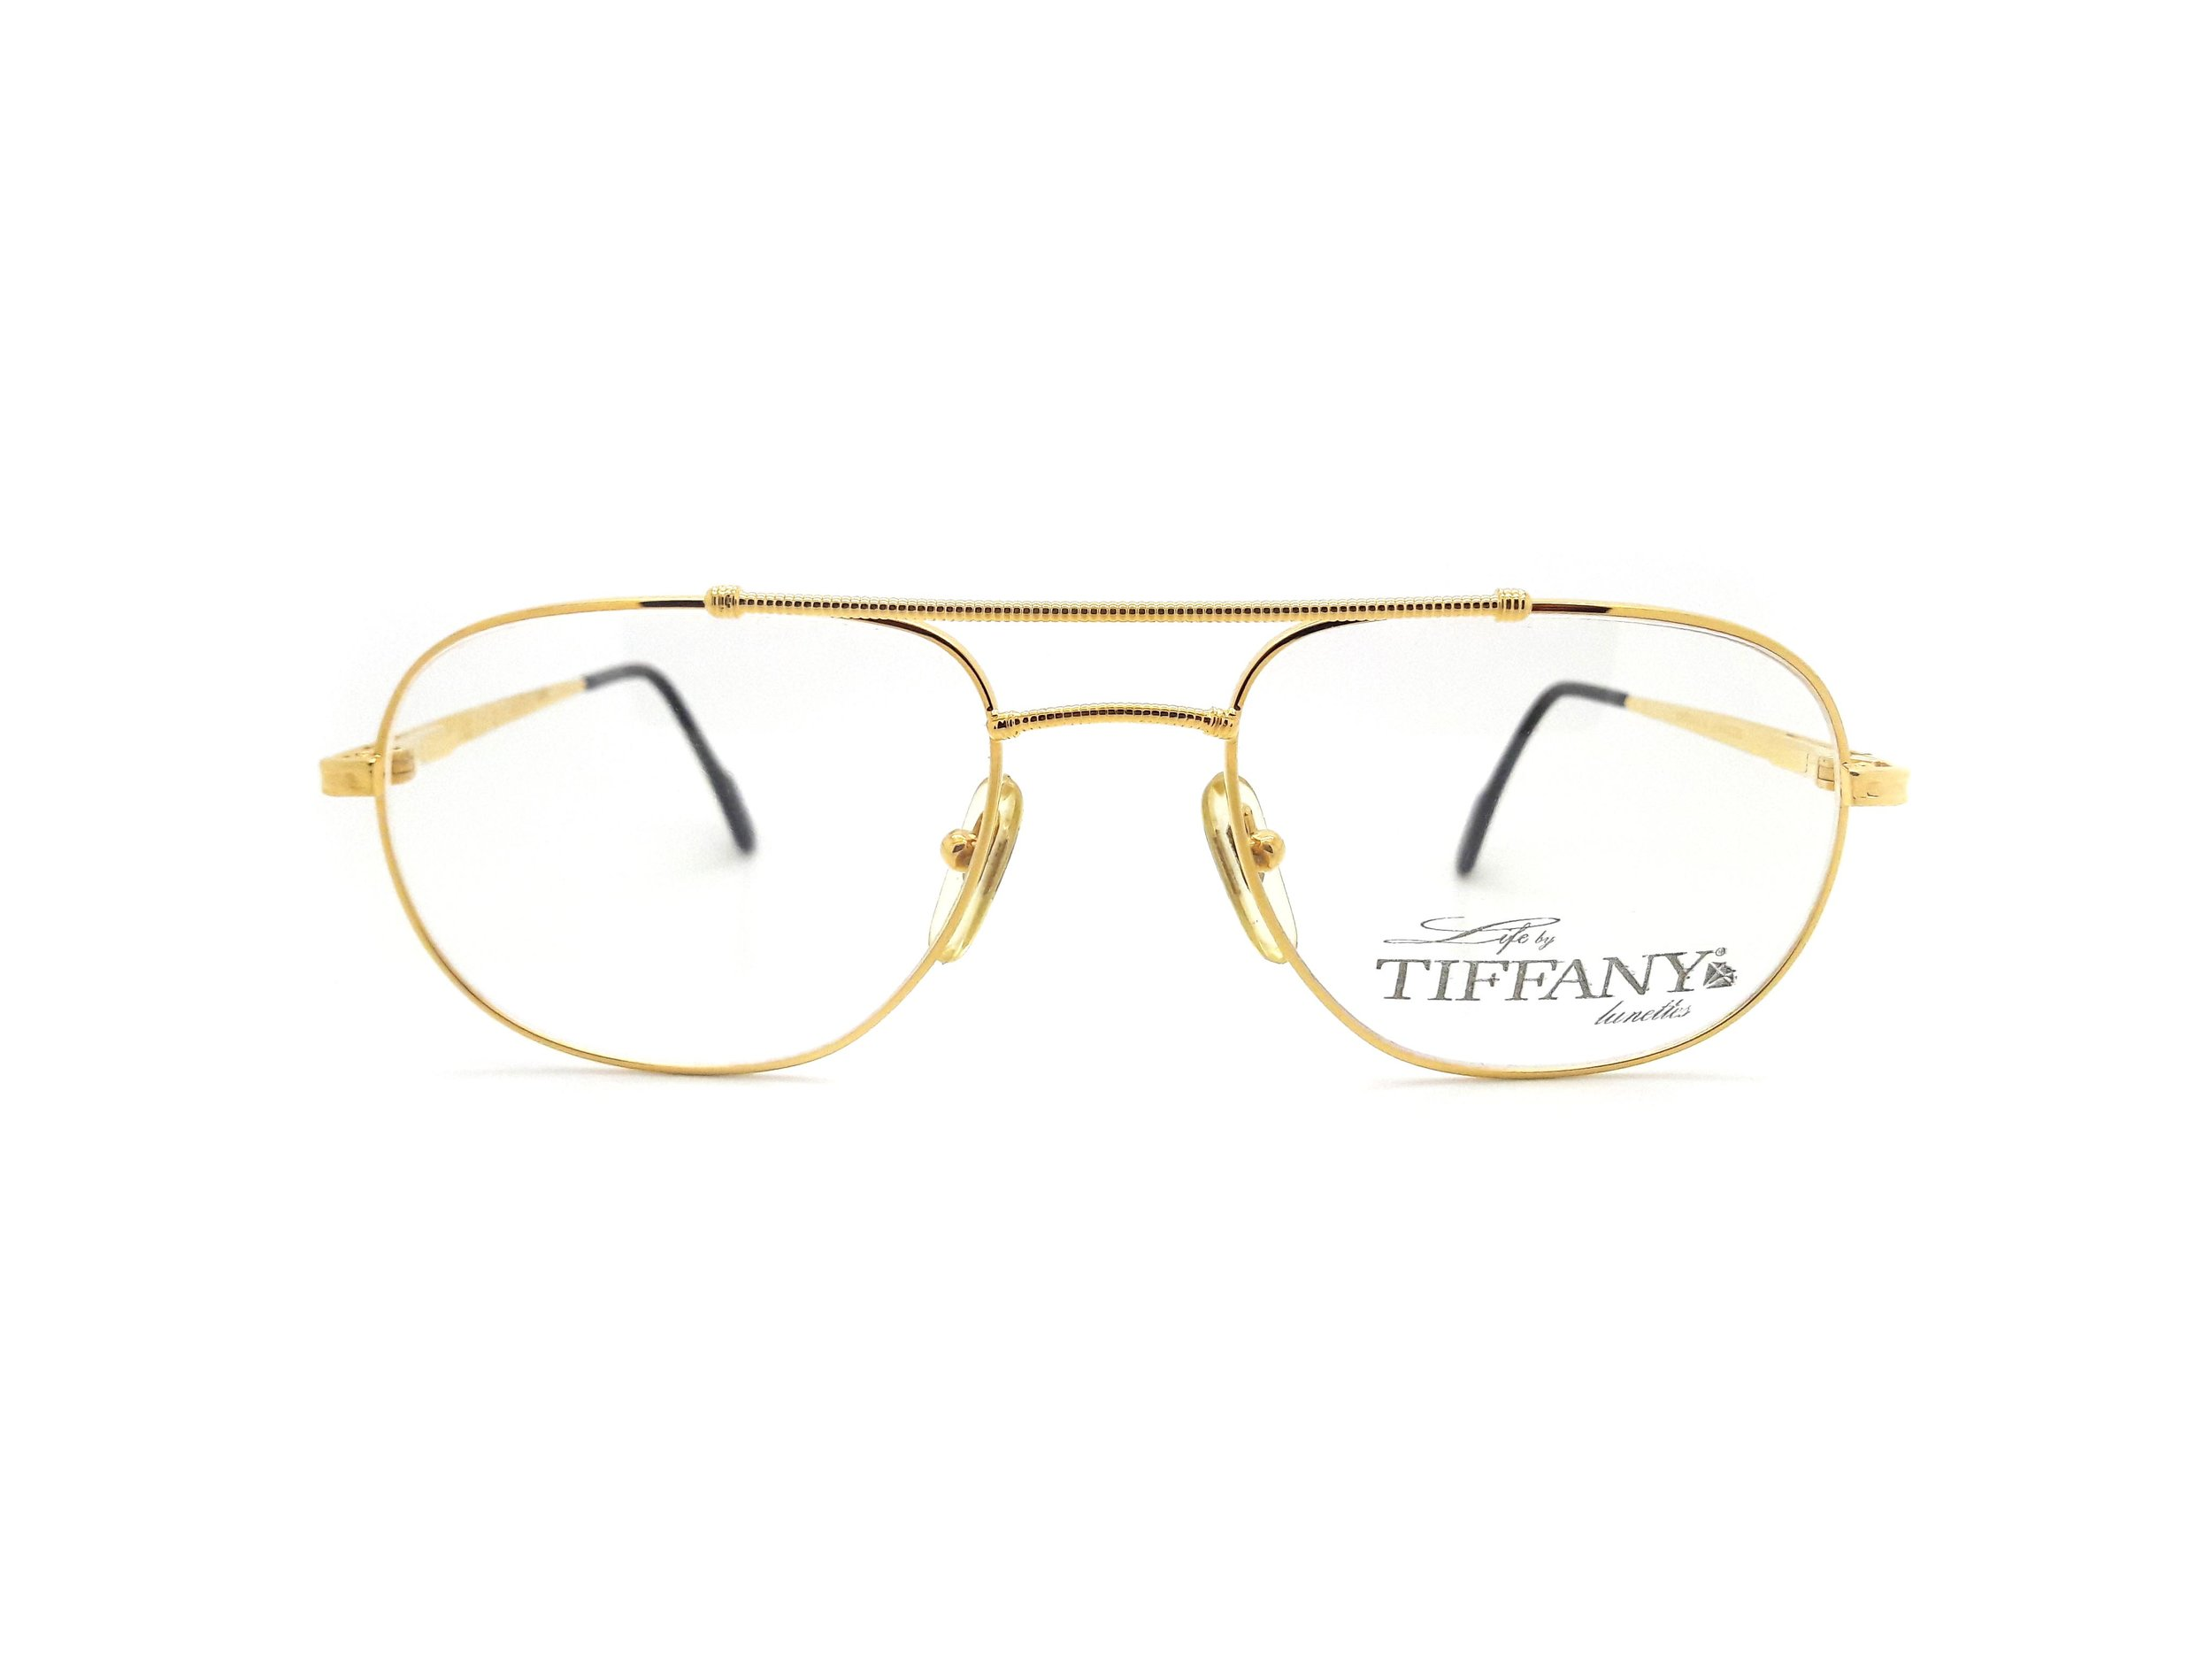 Life by Tiffany Lunettes T384 23K Gold Plated Vintage Aviator ...